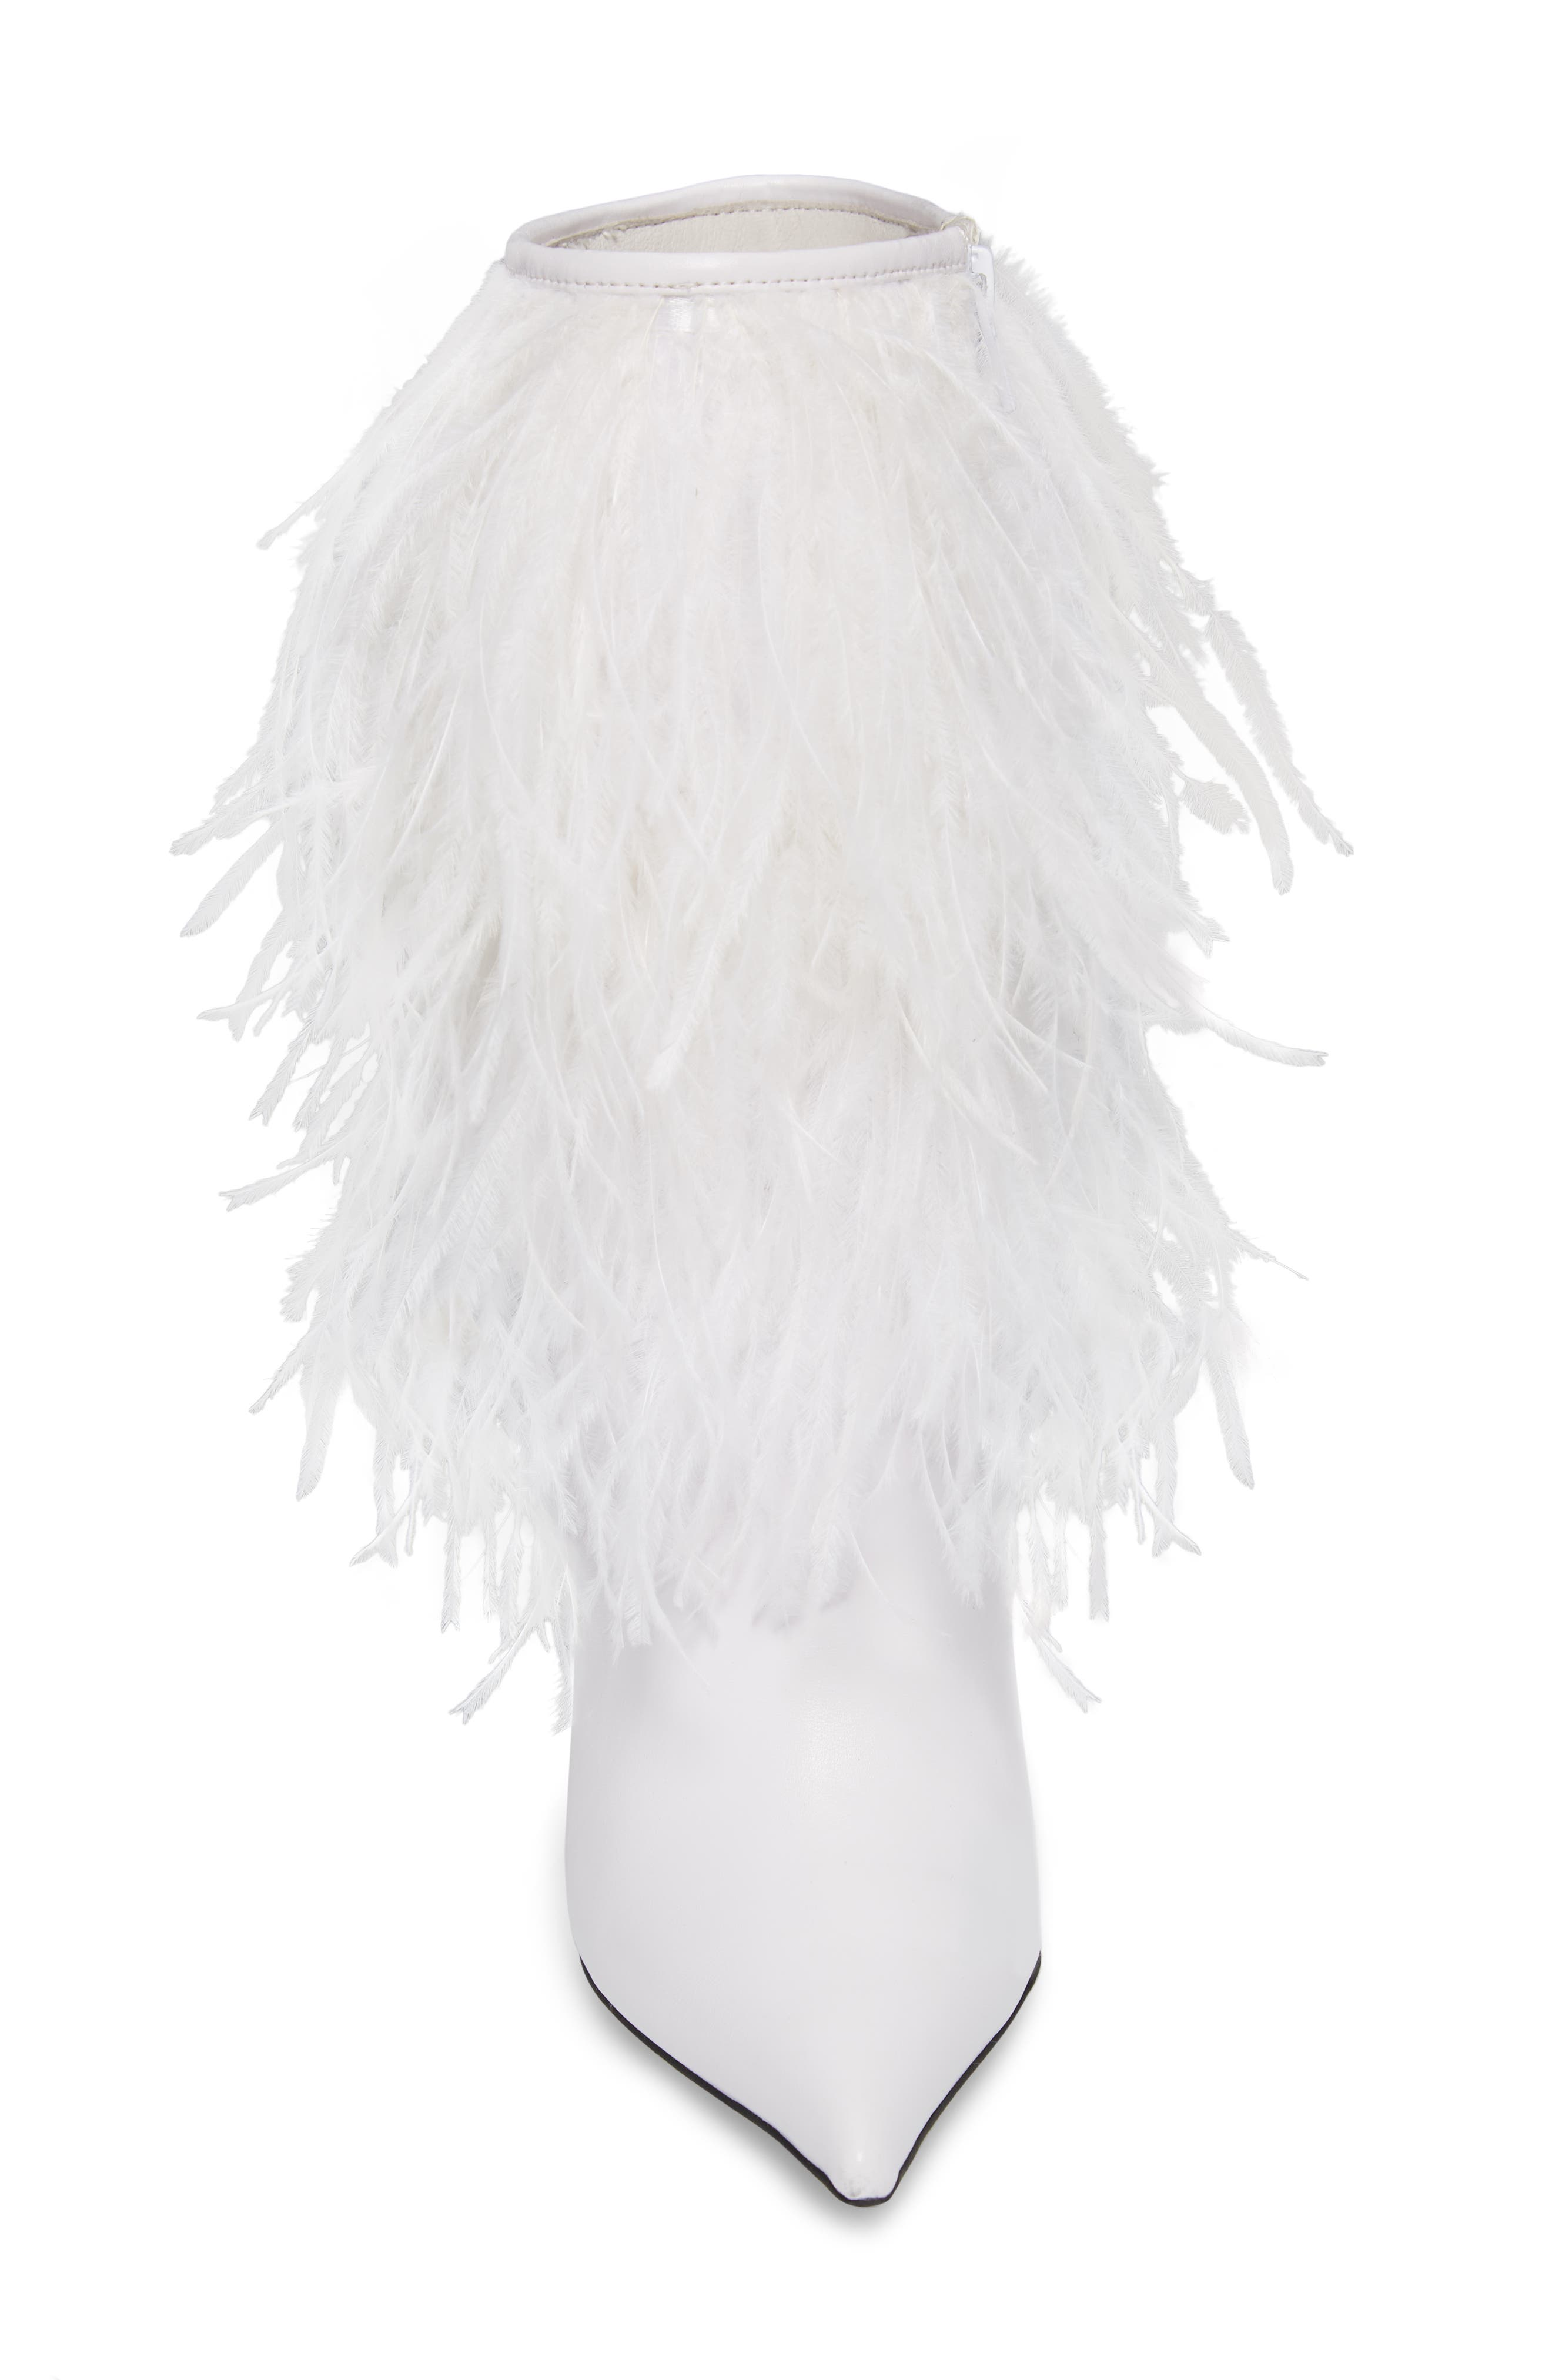 Fly4U Ostrich Feather Bootie,                             Alternate thumbnail 4, color,                             111